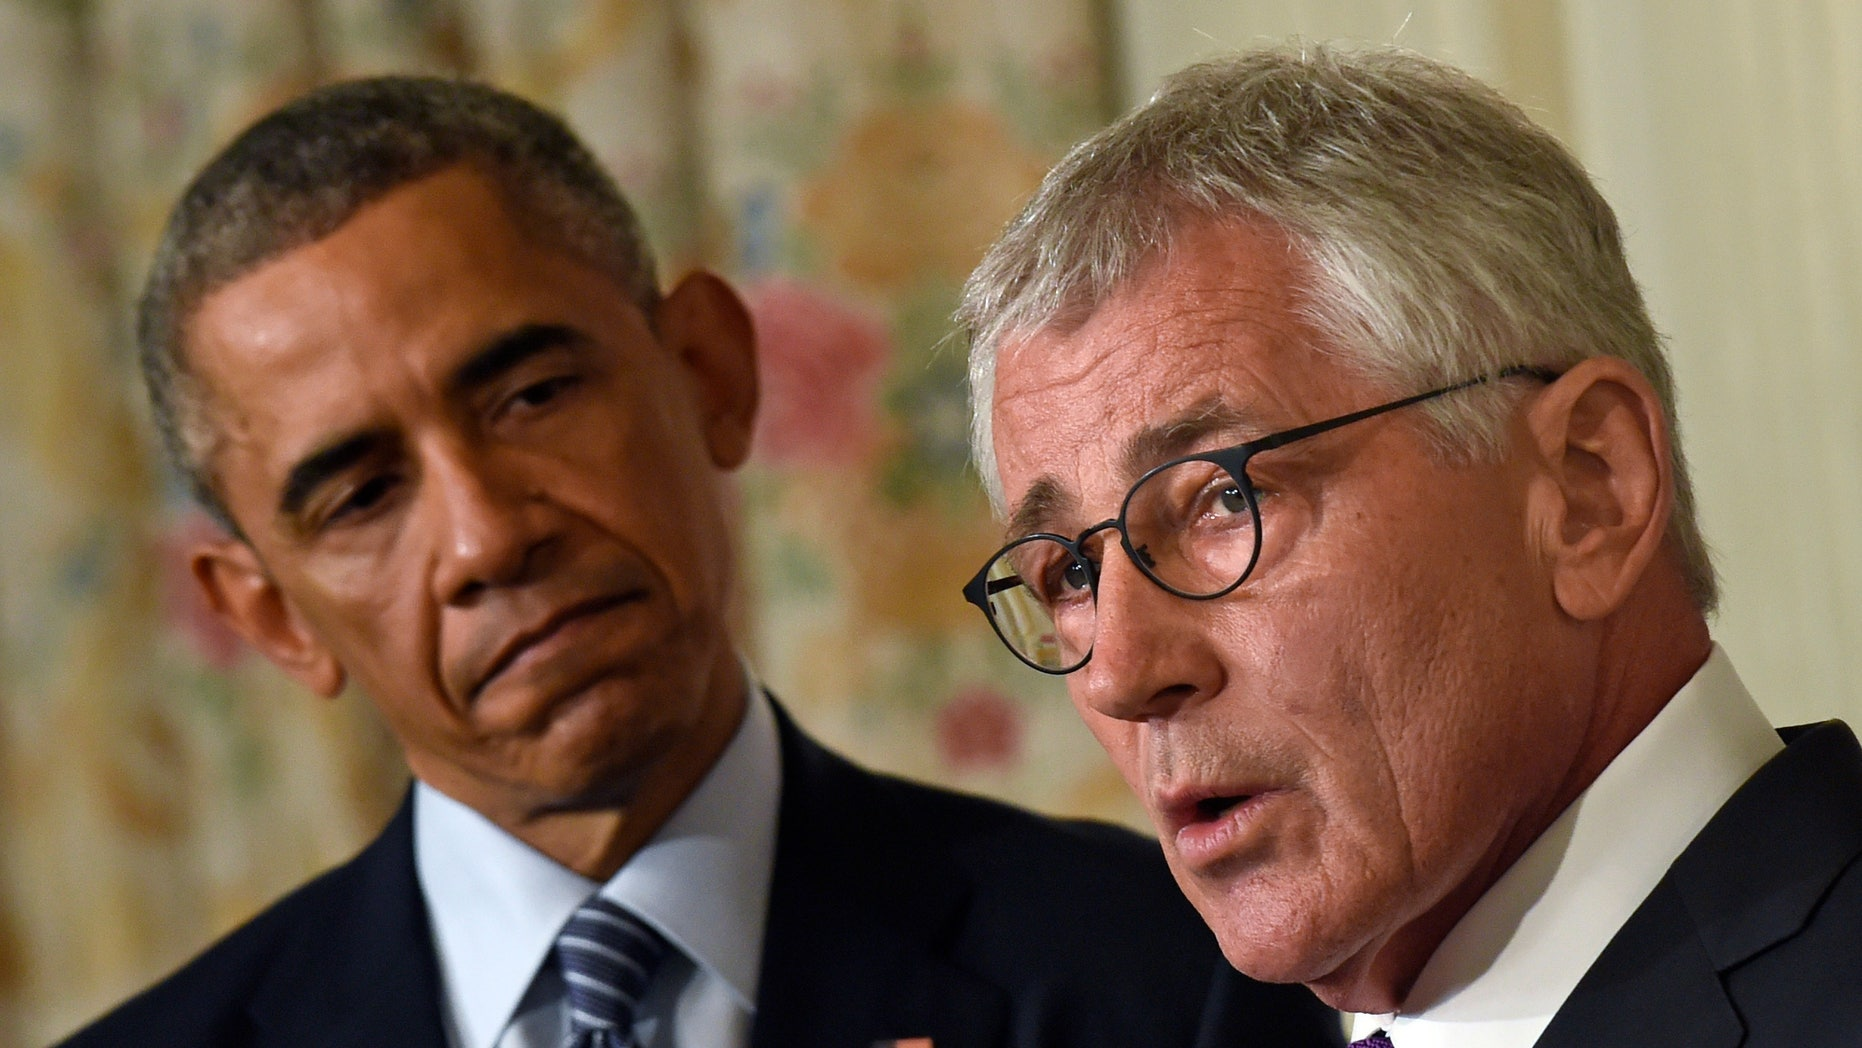 Nov. 24, 2014: President Barack Obama, left, looking to Defense Secretary Chuck Hagel, right, as he talks about his resignation during an event in the State Dining Room of the White House in Washington.